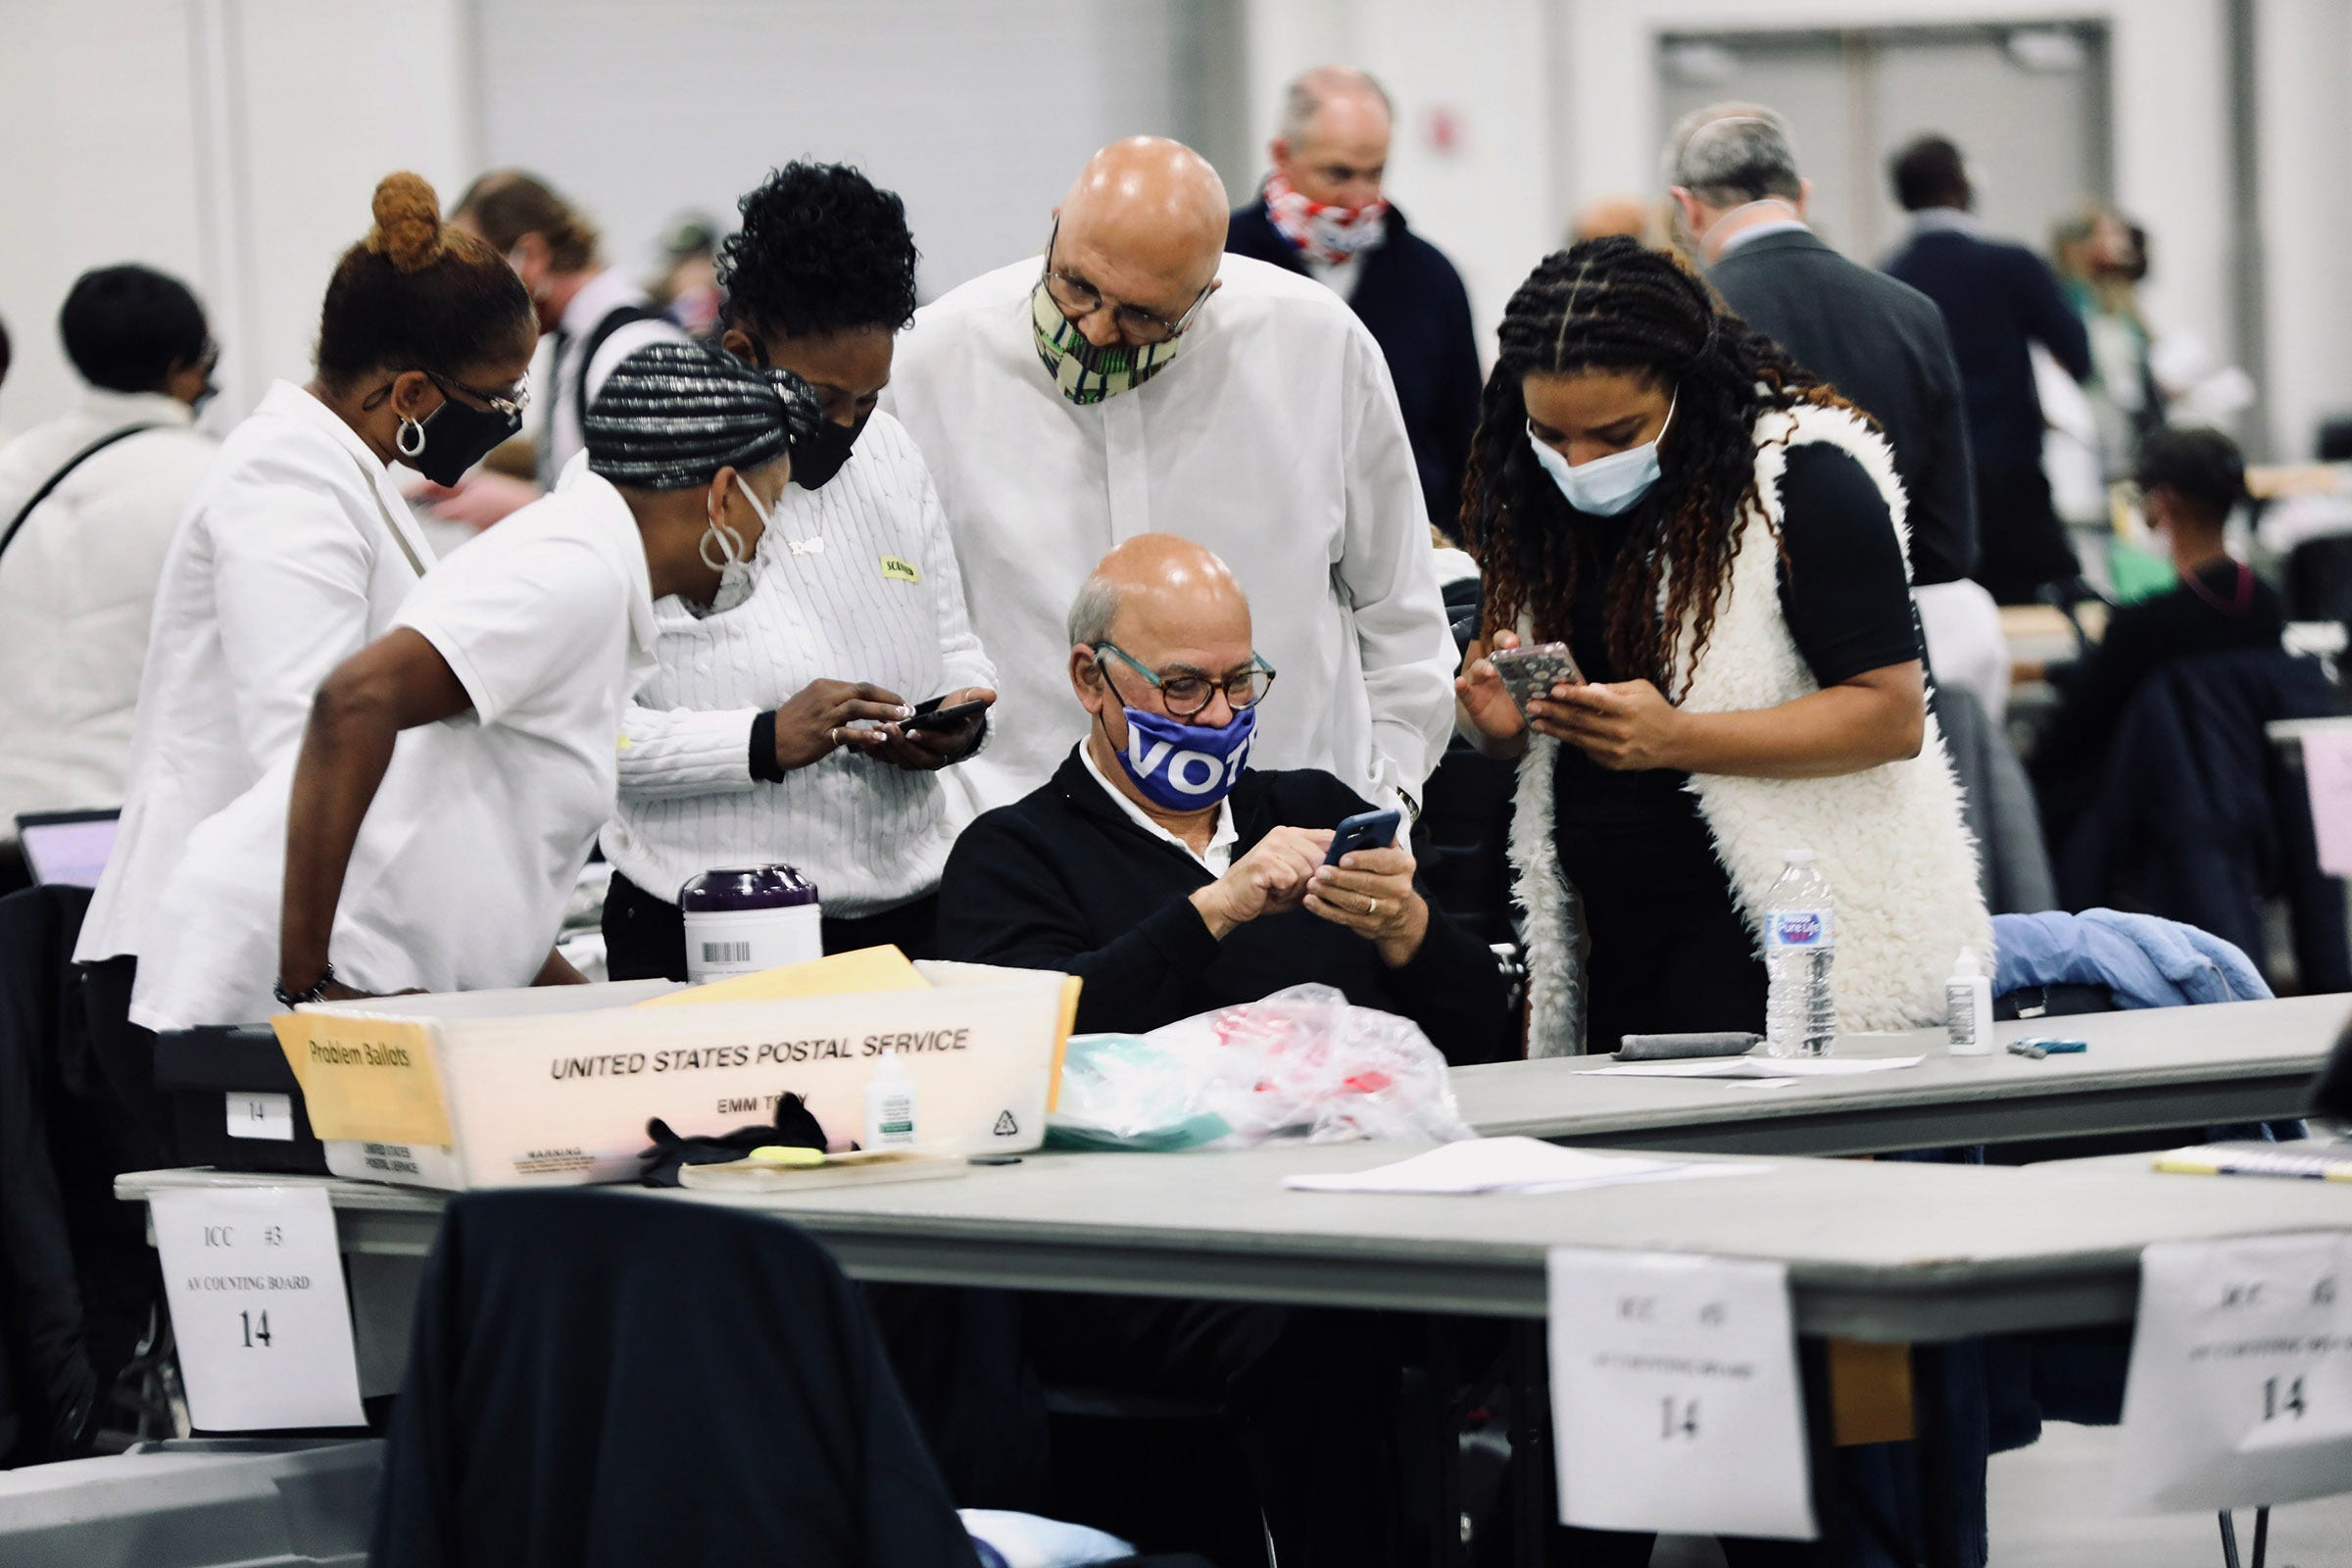 Detroit elections employees examine election results on their phones as they count absentee ballots at the TCF Center on Nov. 4.